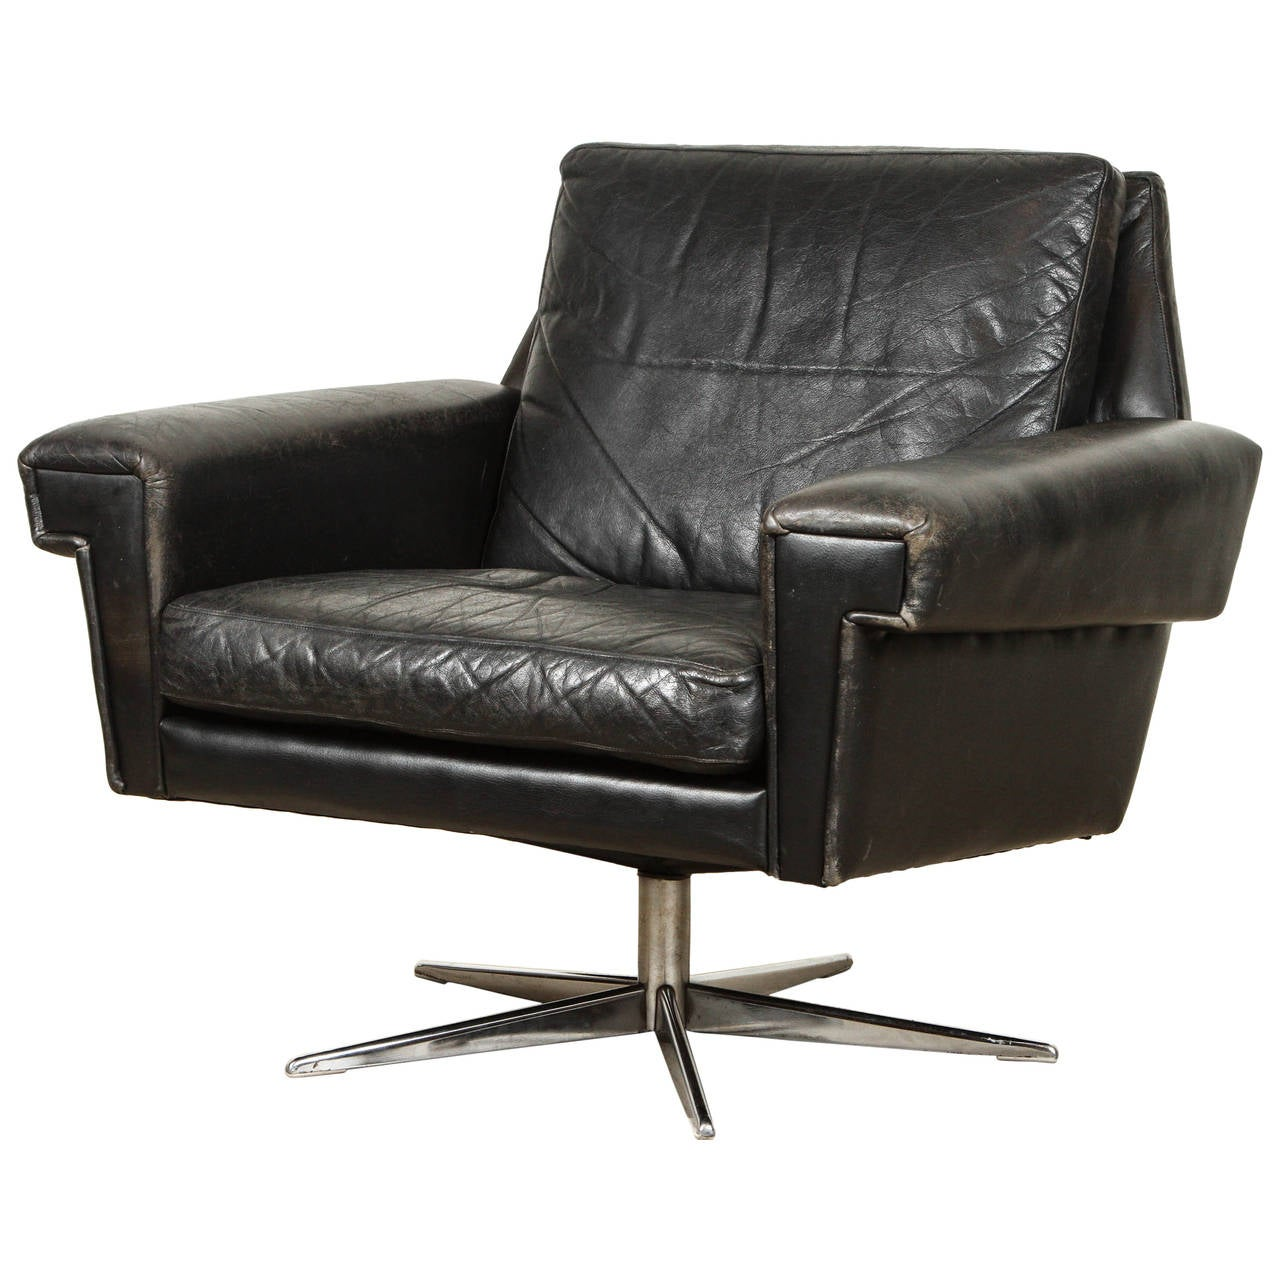 this danish midcentury leather swivel chair is no longer available